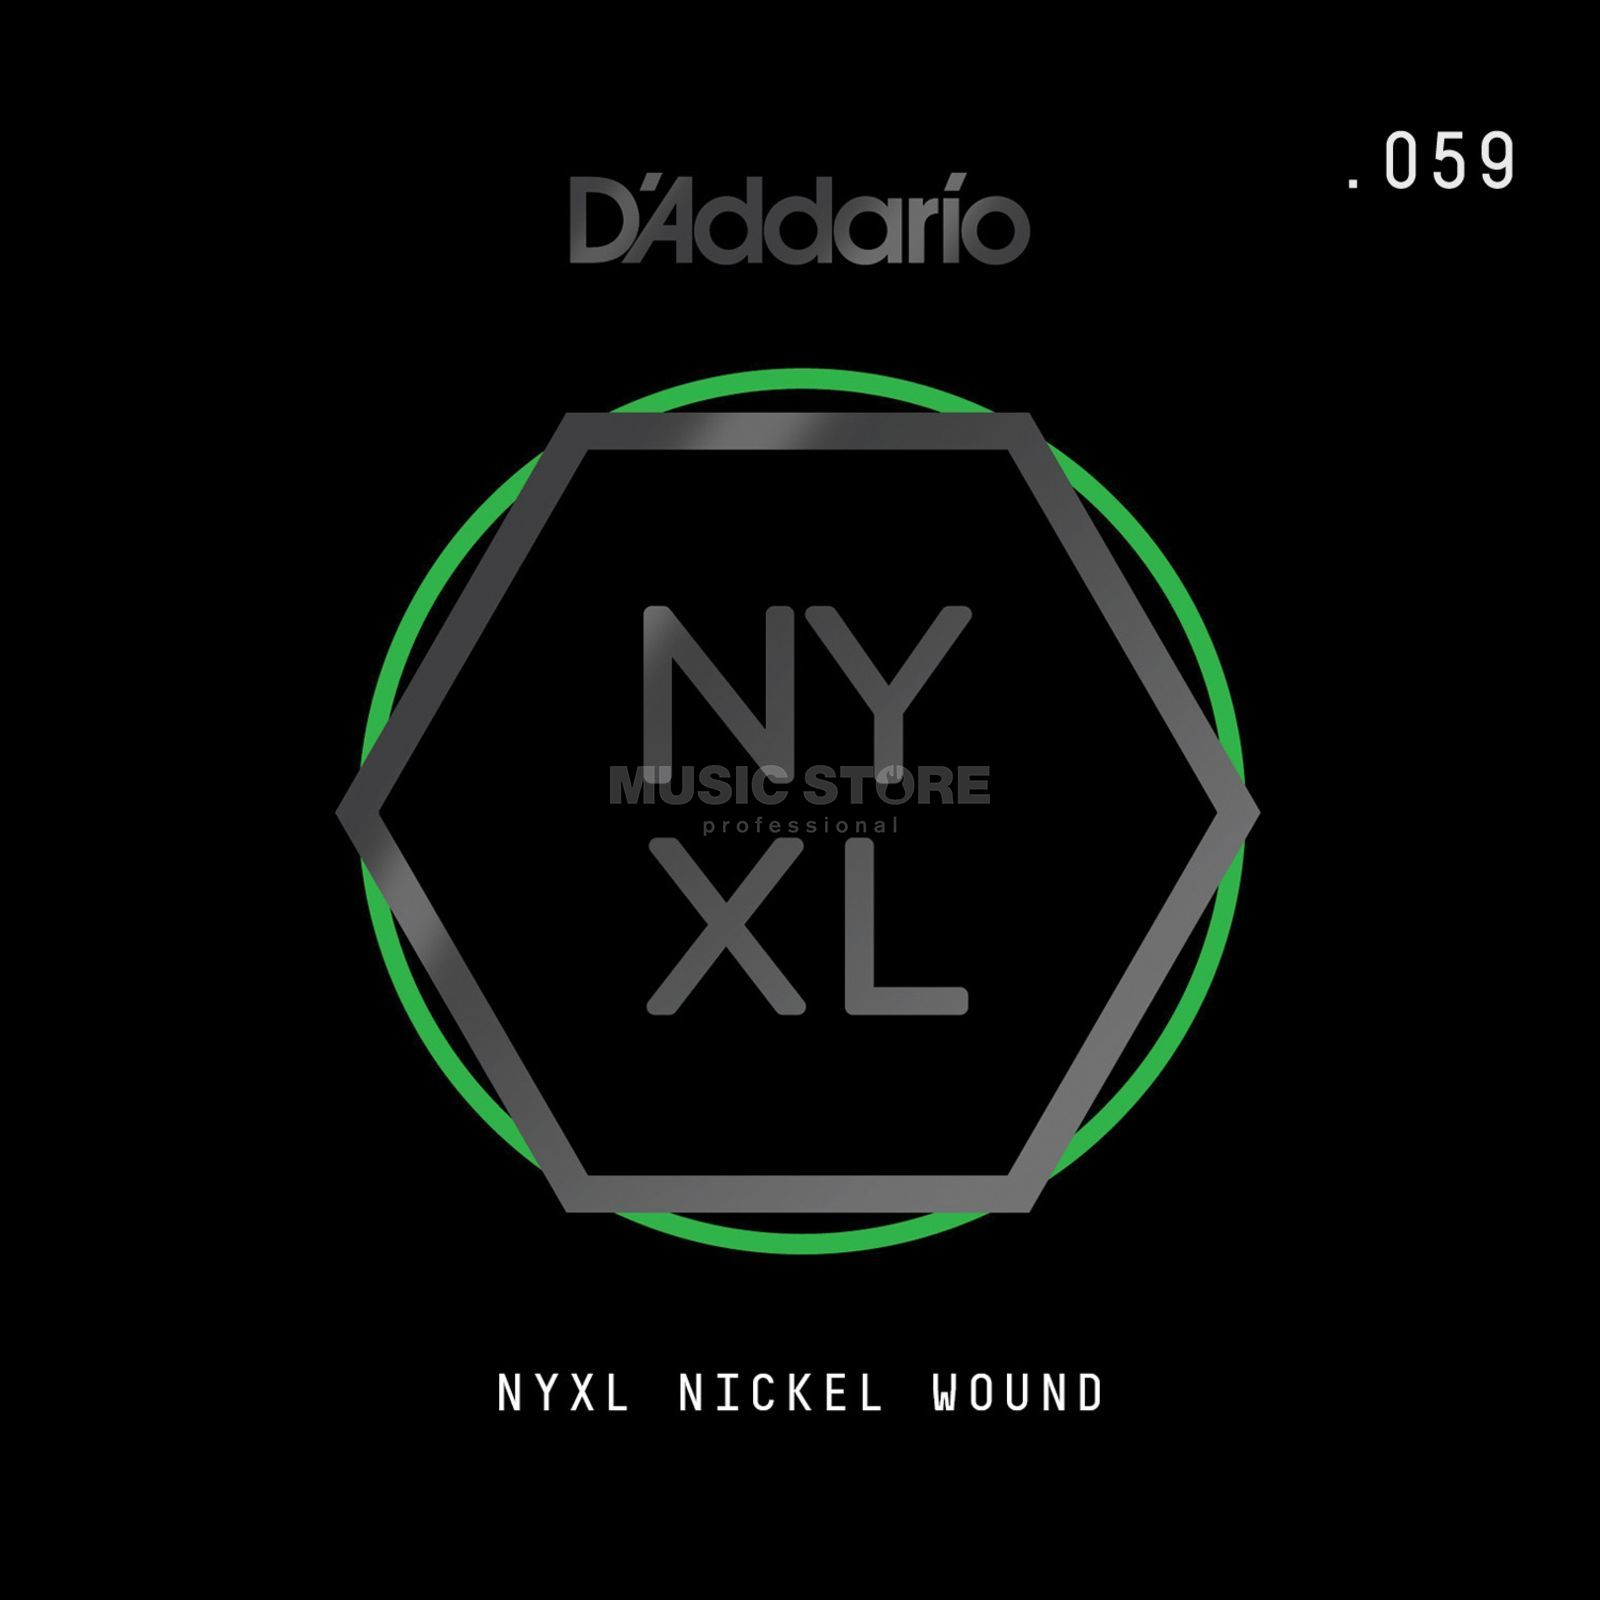 D'Addario NYNW059 Single String Nickel Wound Imagem do produto